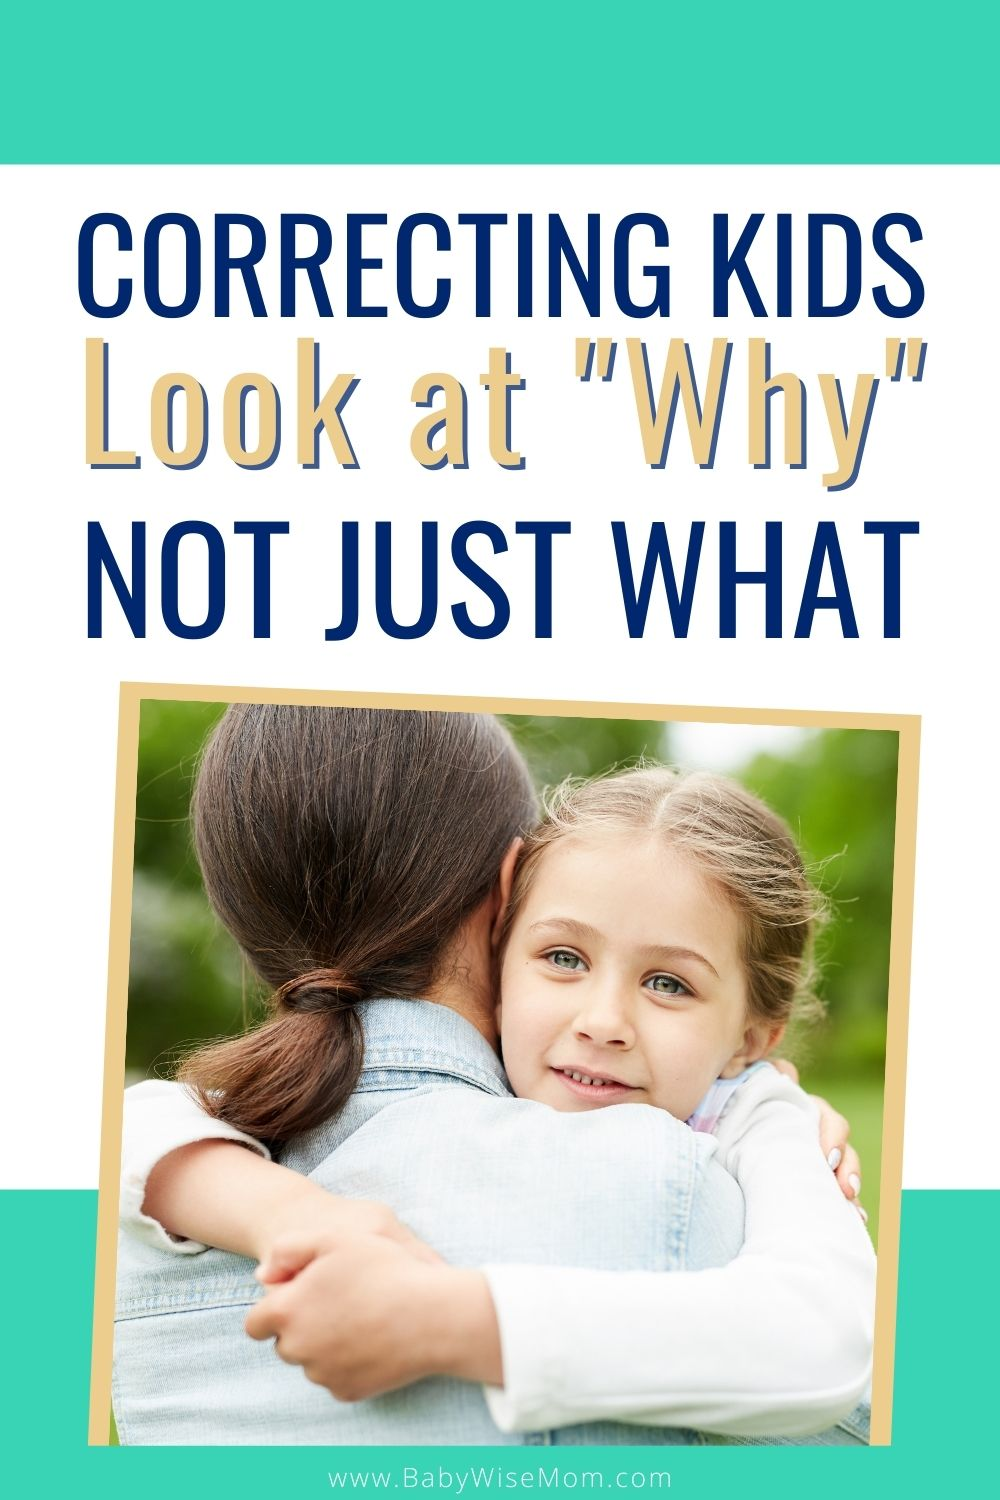 Correcting Kids: Look at why not just what